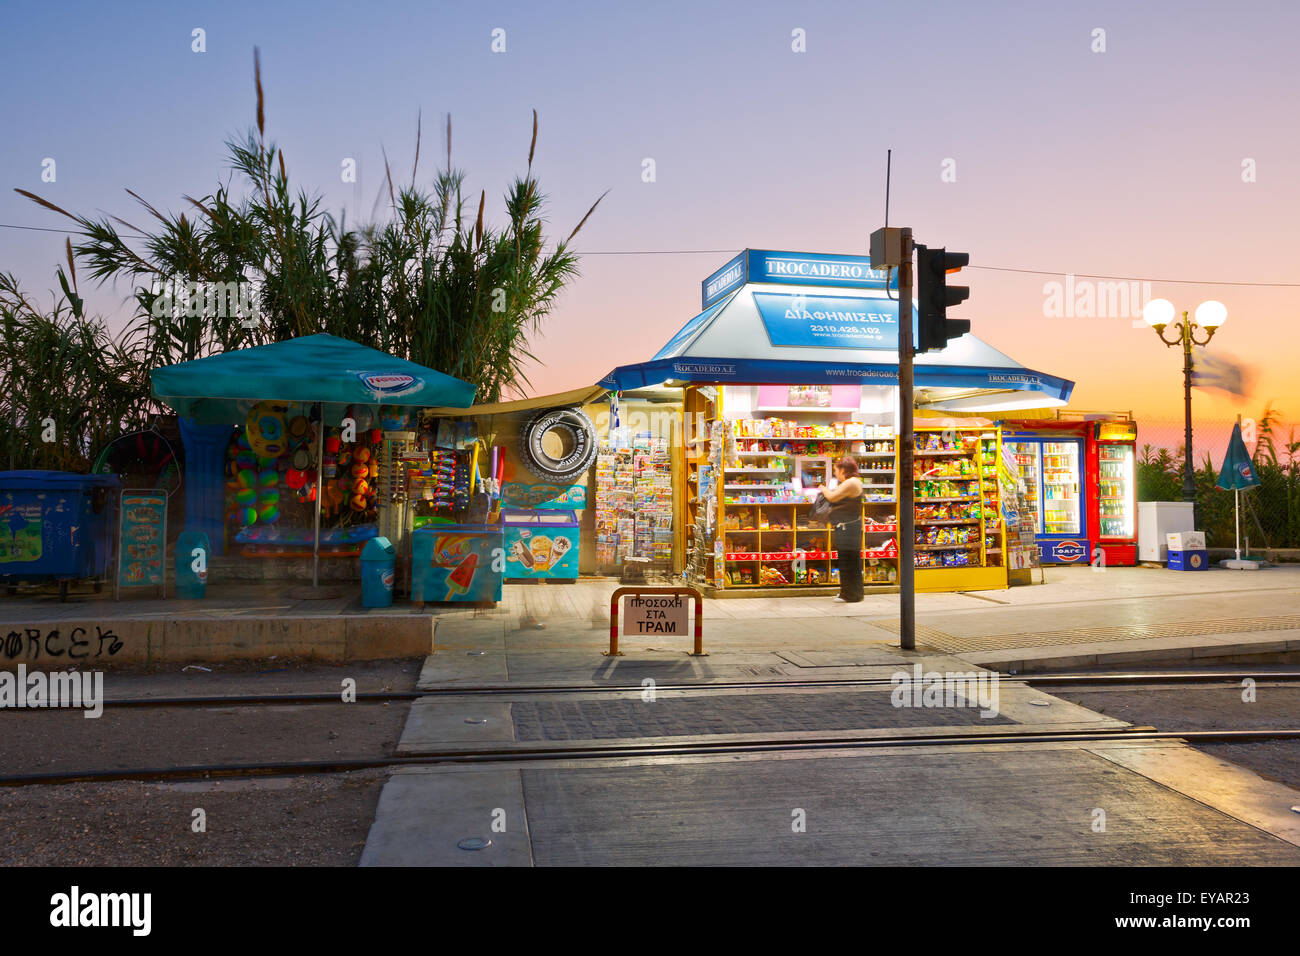 Newsstand and beach kiosk in Palaio Faliro, Athens, Greece - Stock Image